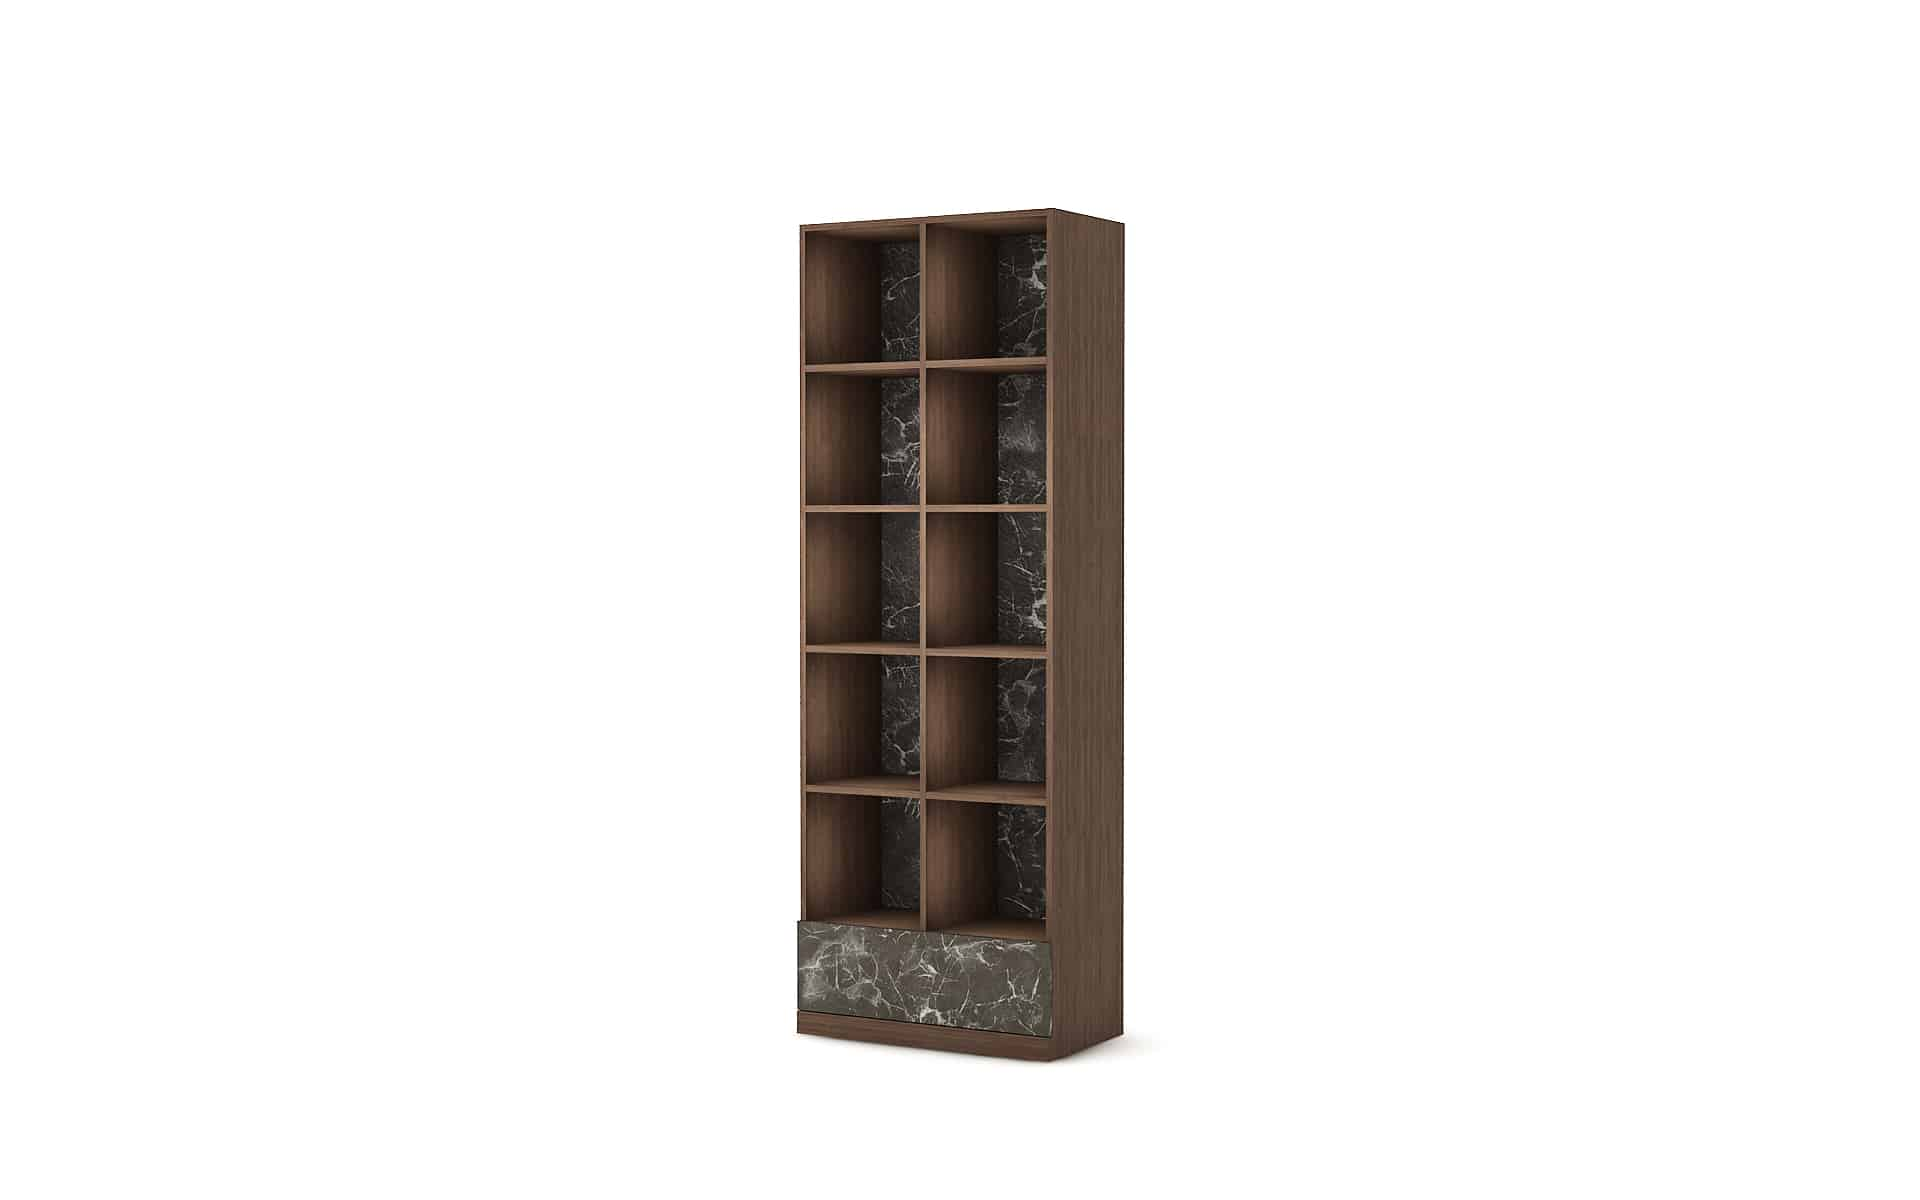 Shelving unit Zero image 3